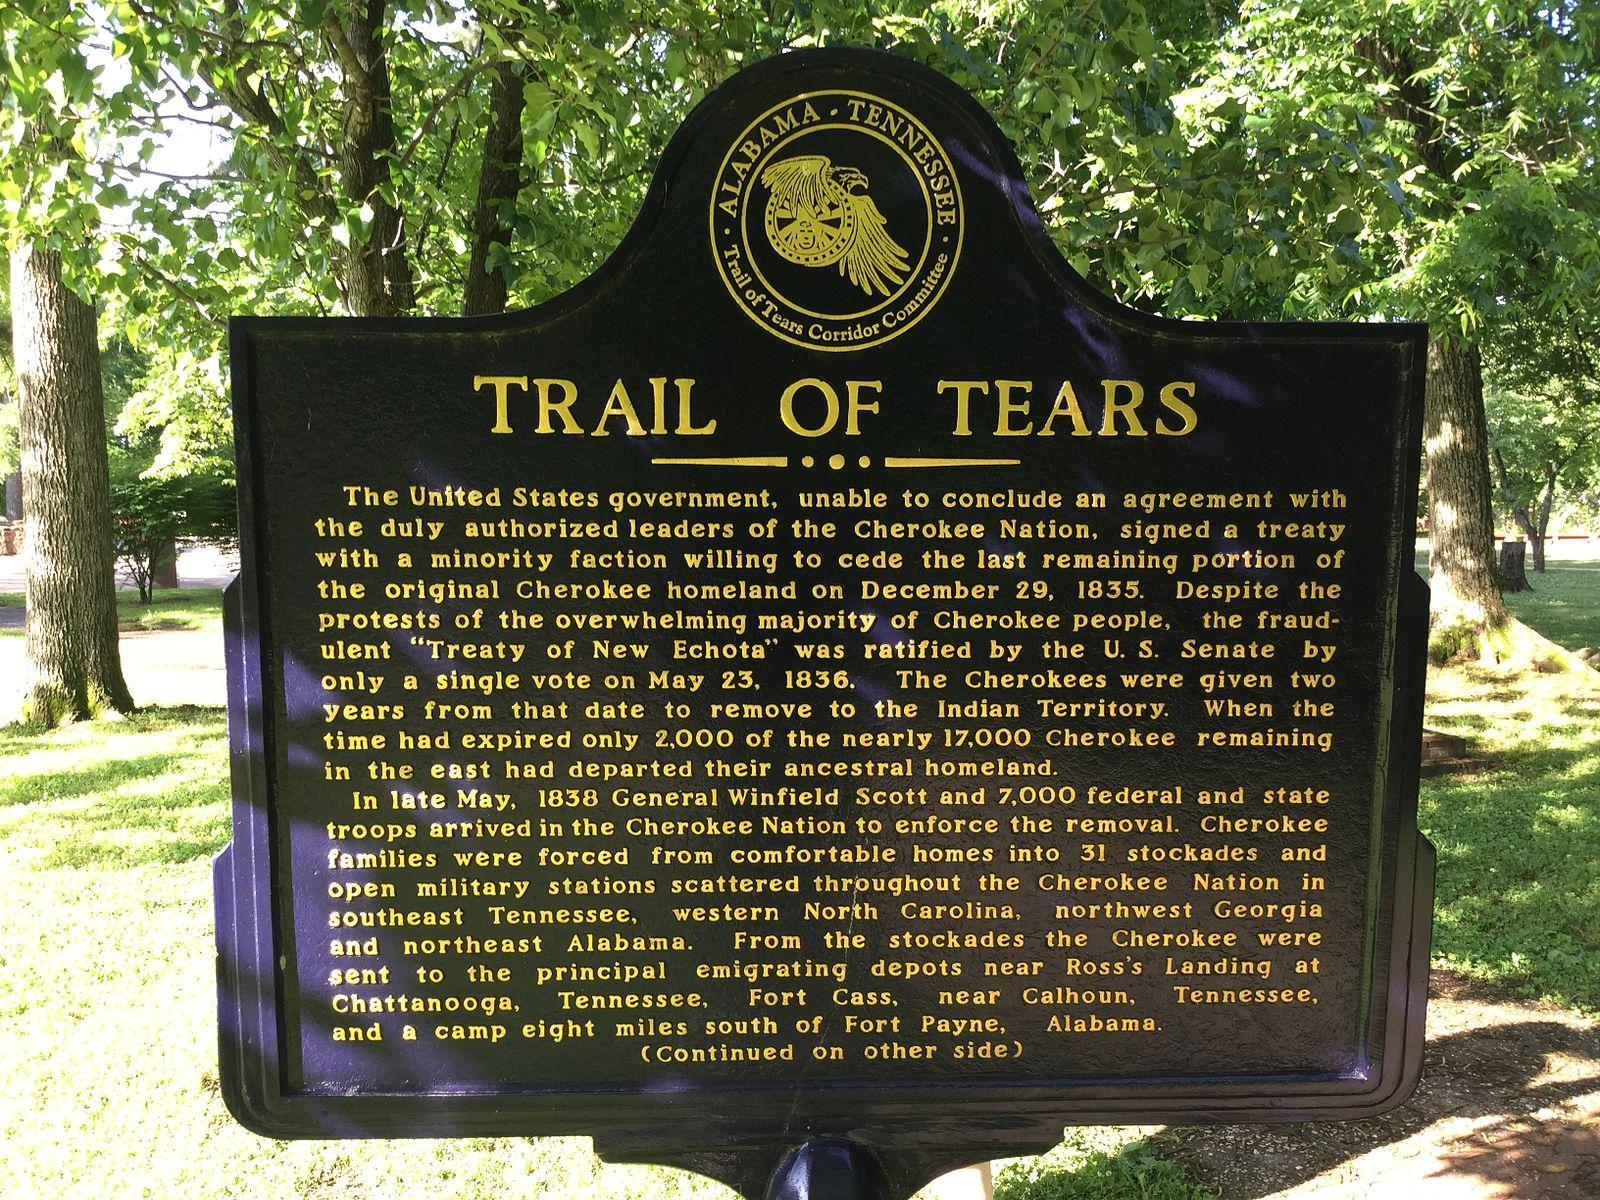 Arkansas Quarry Plan Tabled Over Proximity to Trail of Tears